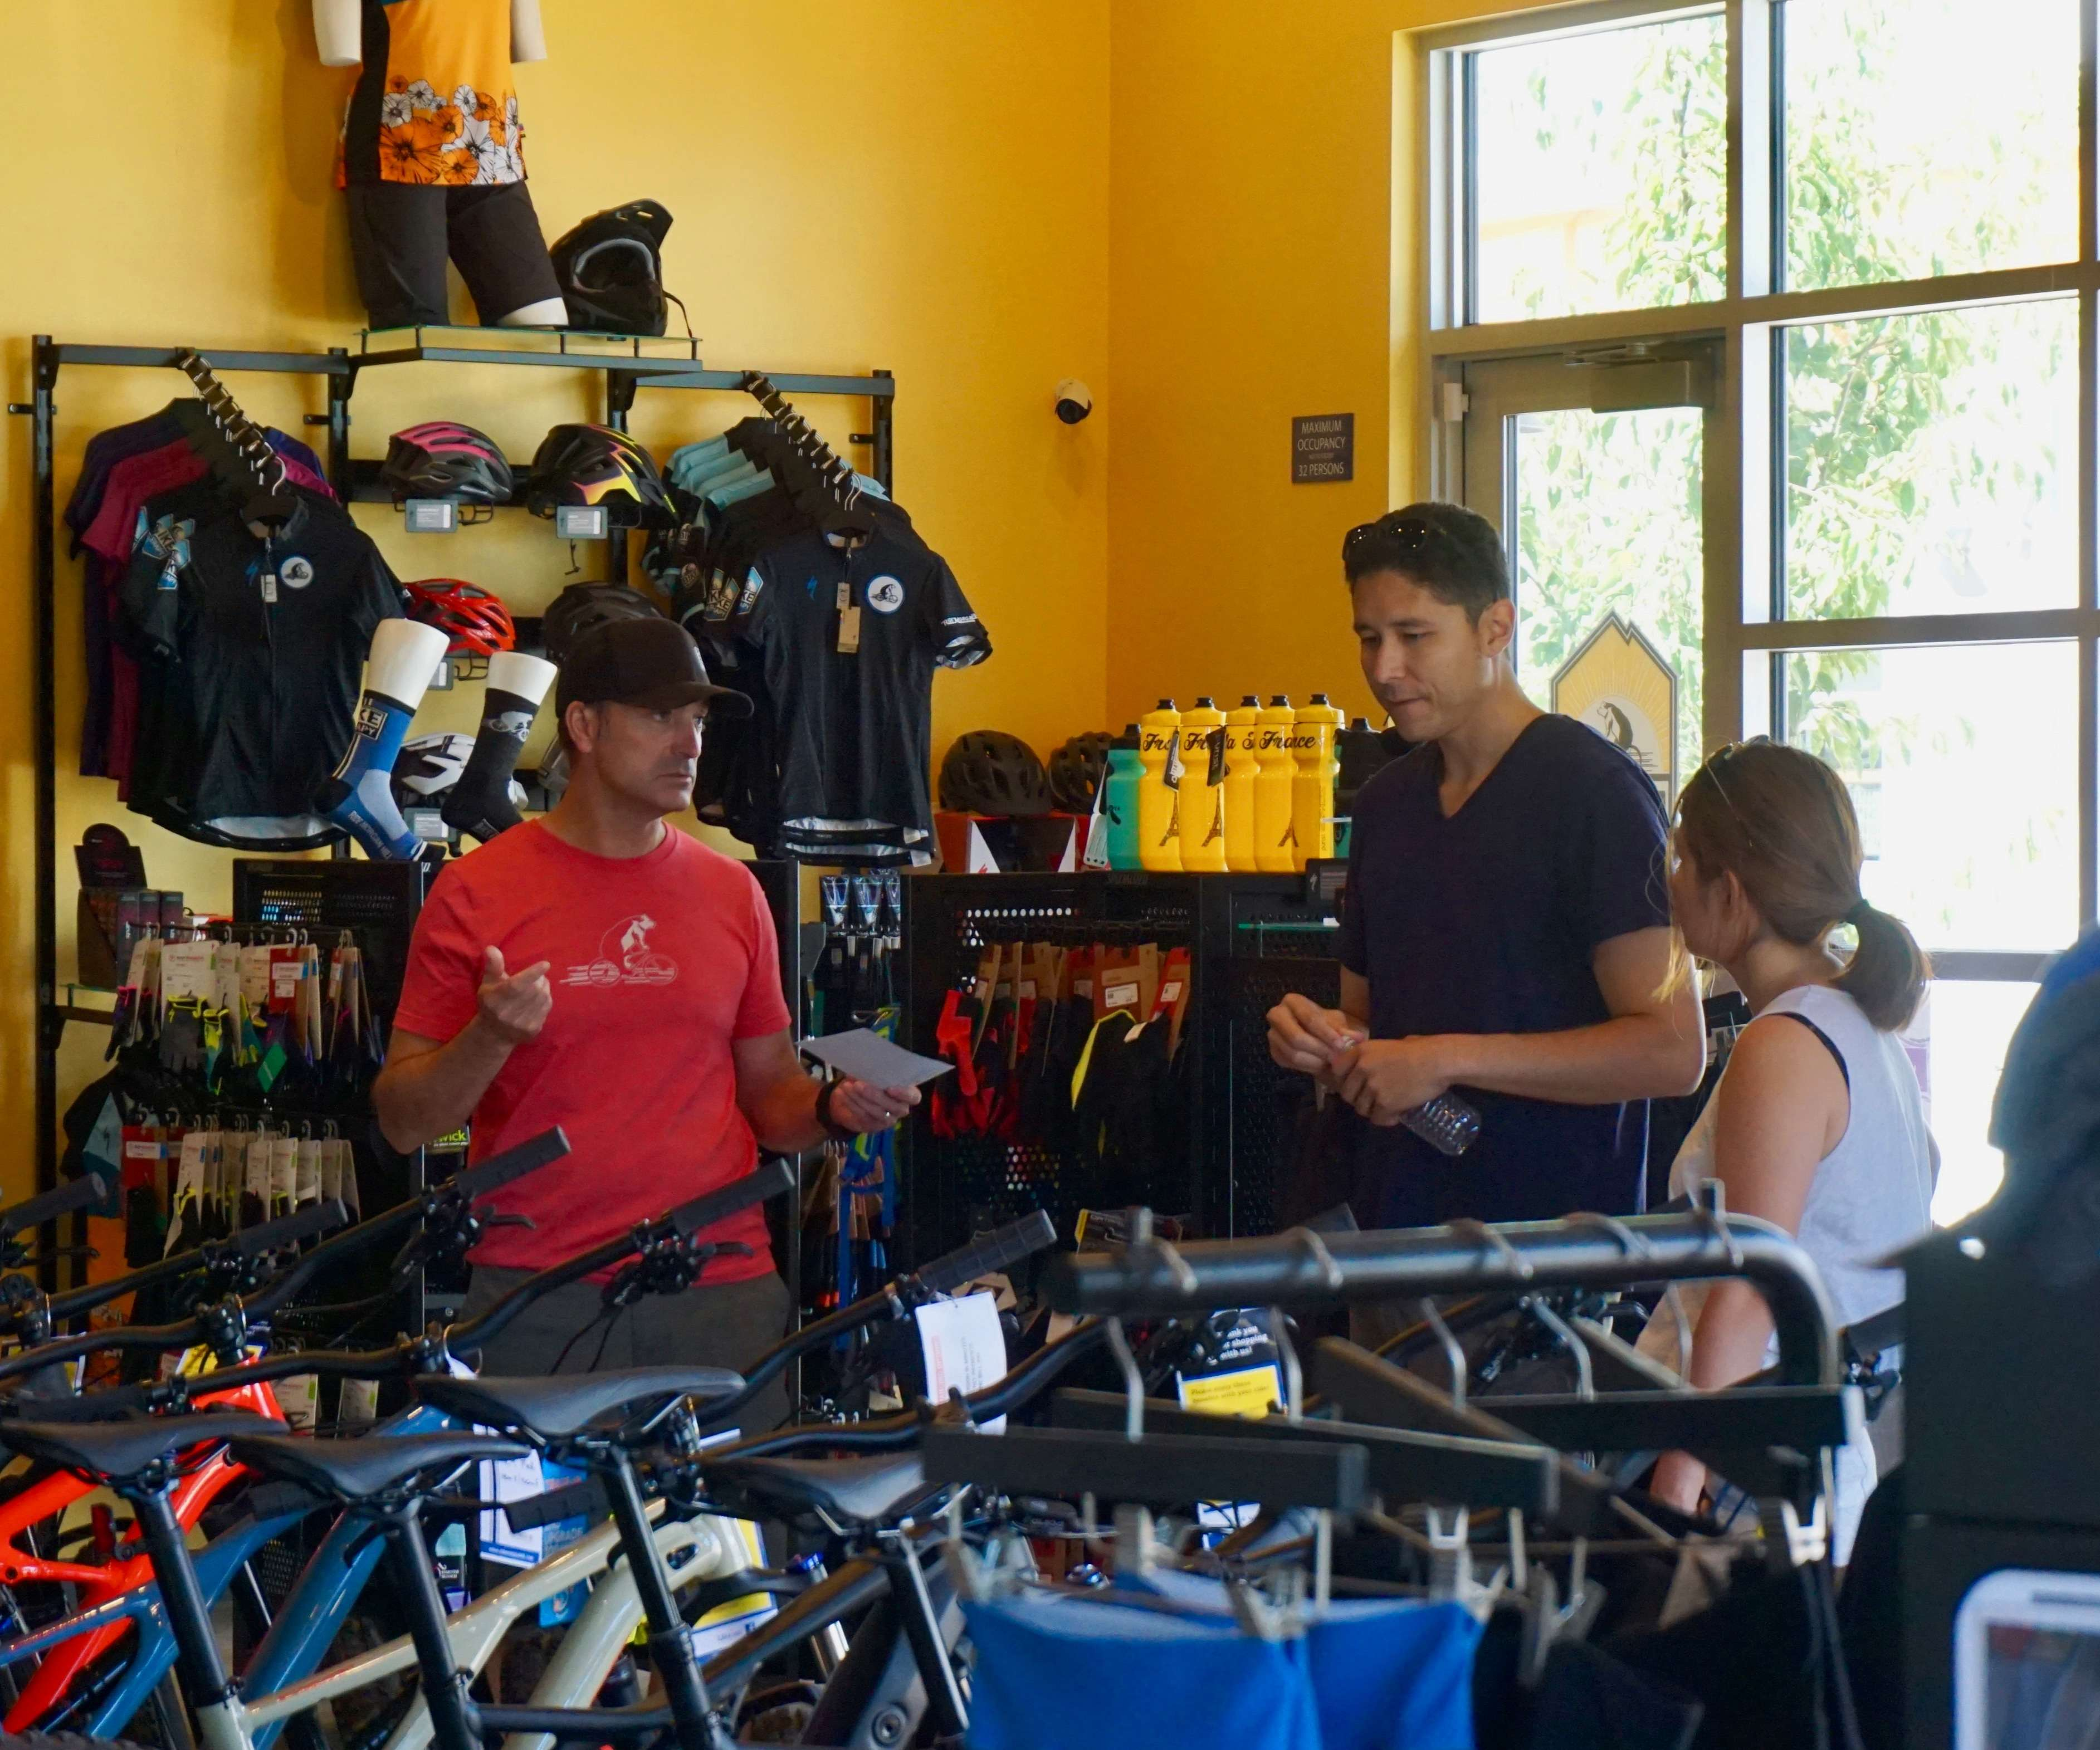 The store owner helping two customers pick their perfect bike